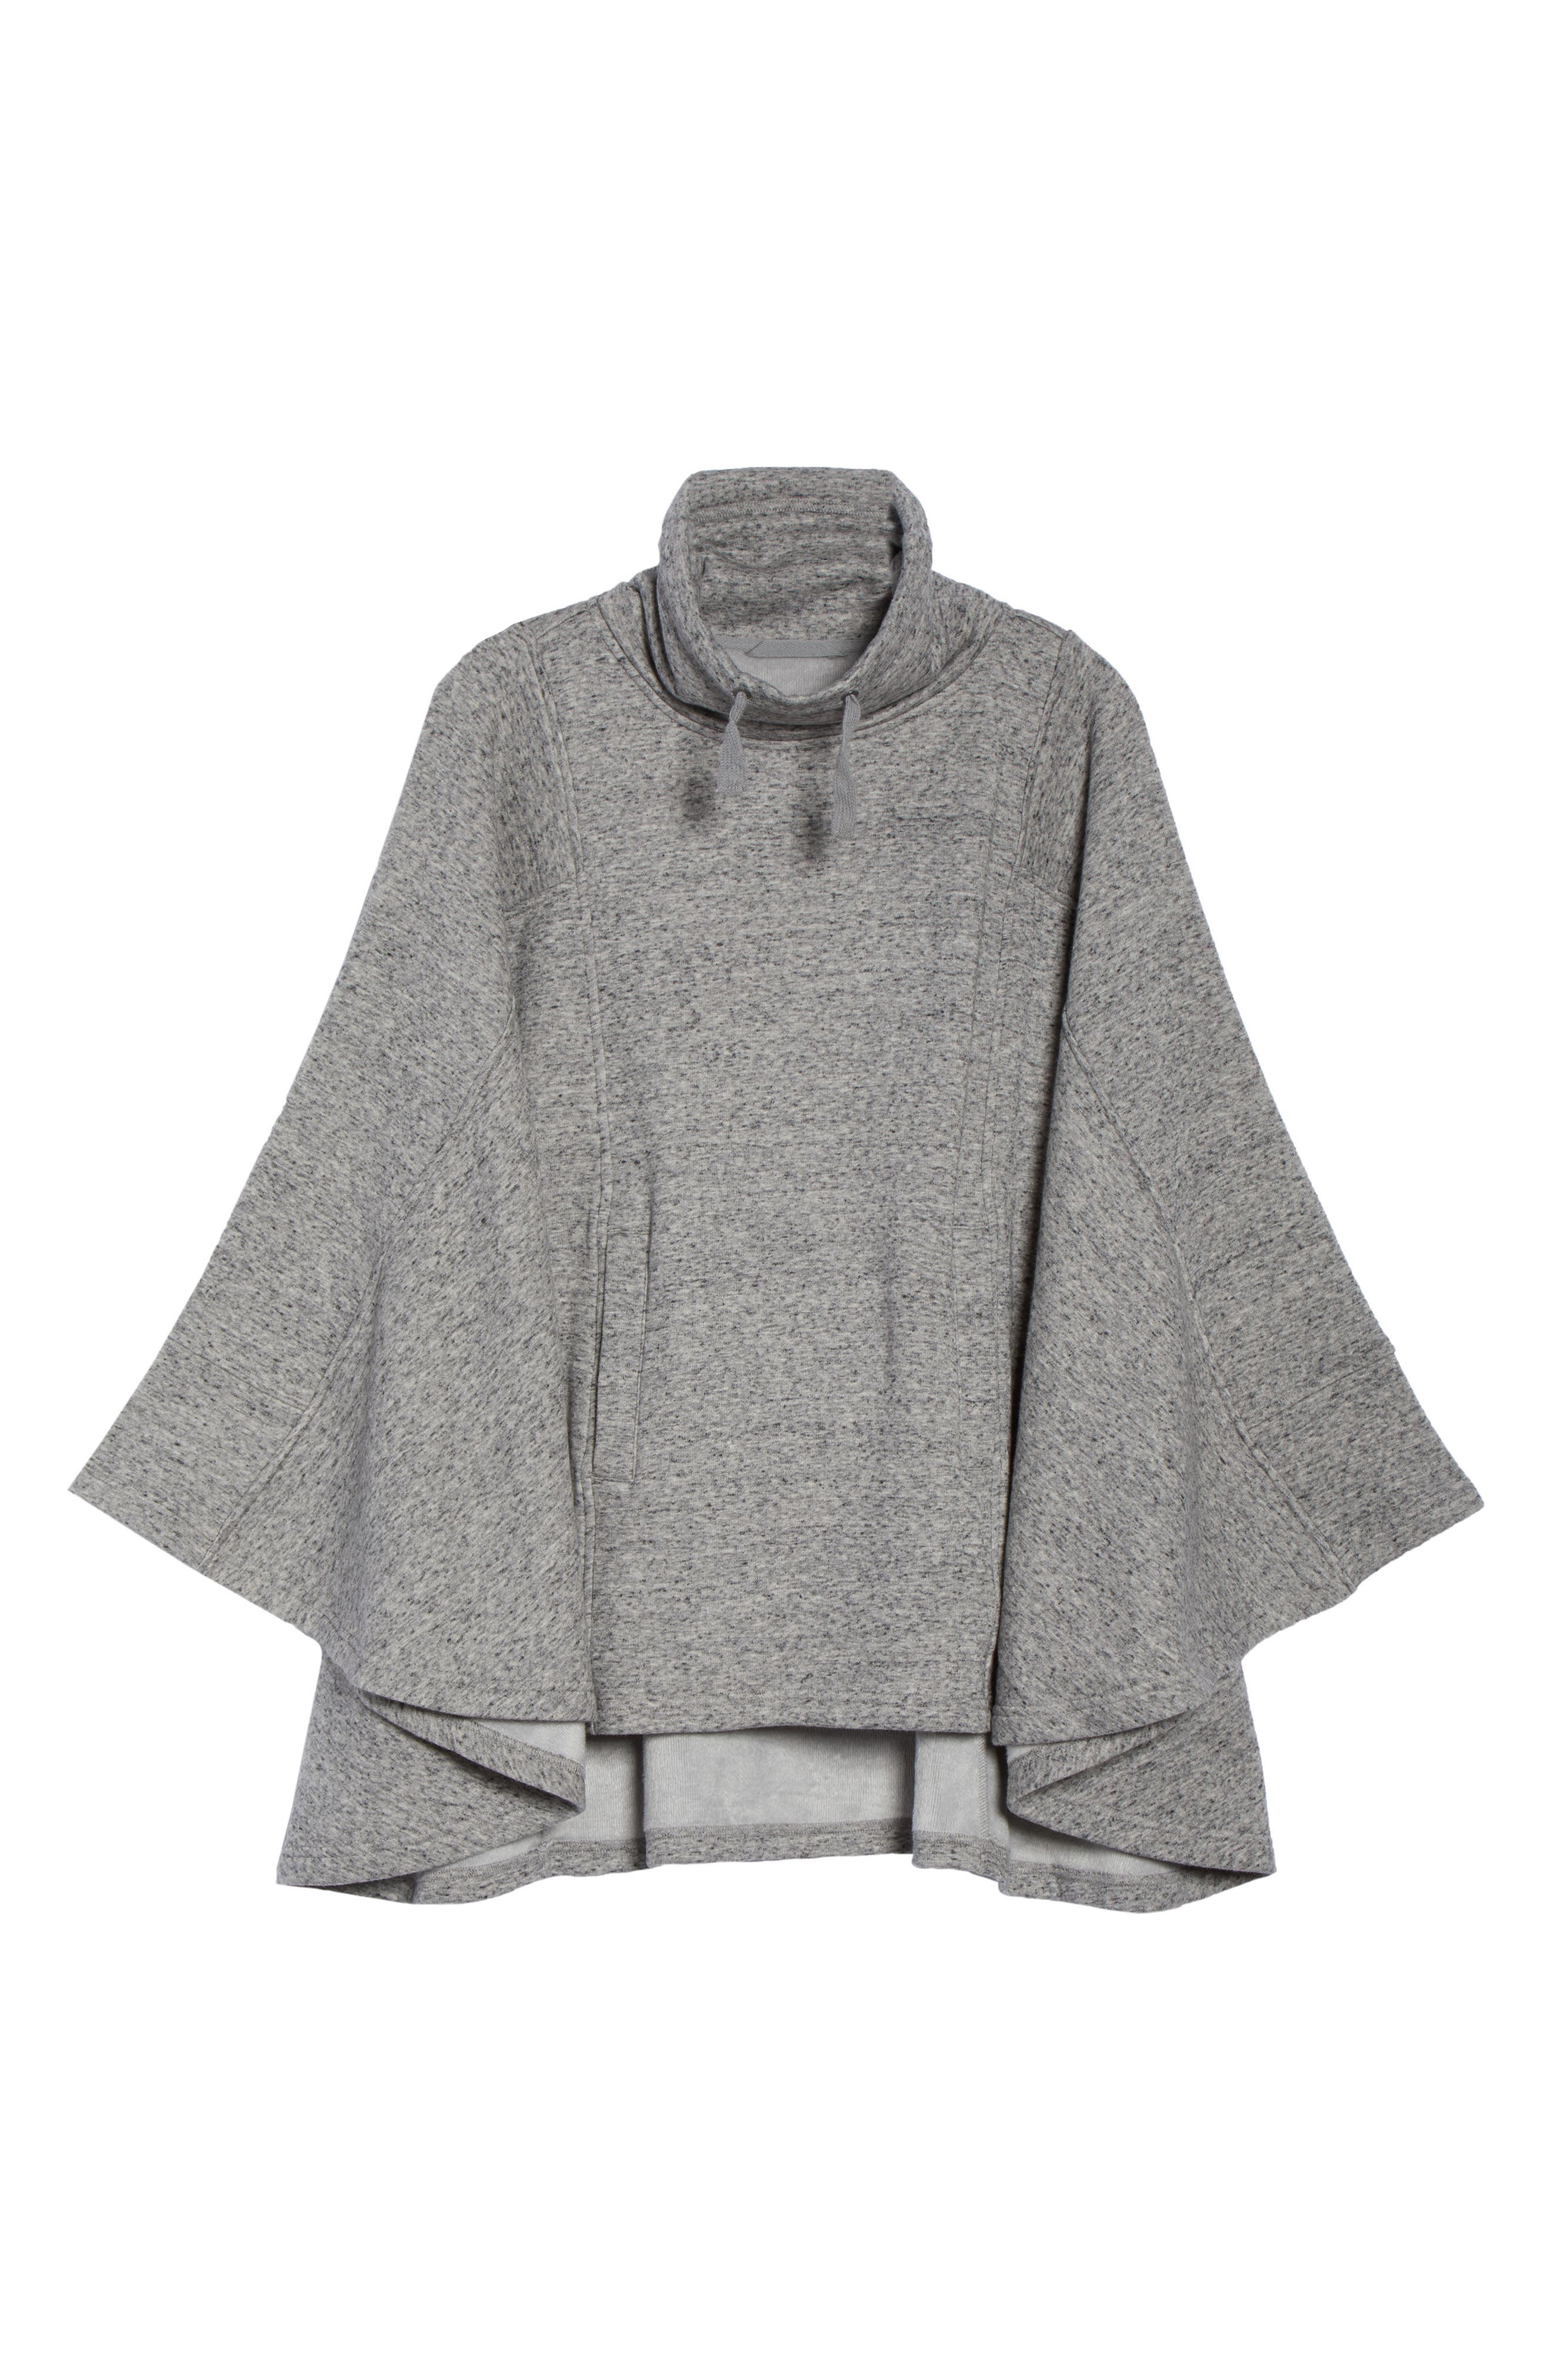 Pichot Turtleneck Poncho,                             Alternate thumbnail 6, color,                             GREY HEATHER